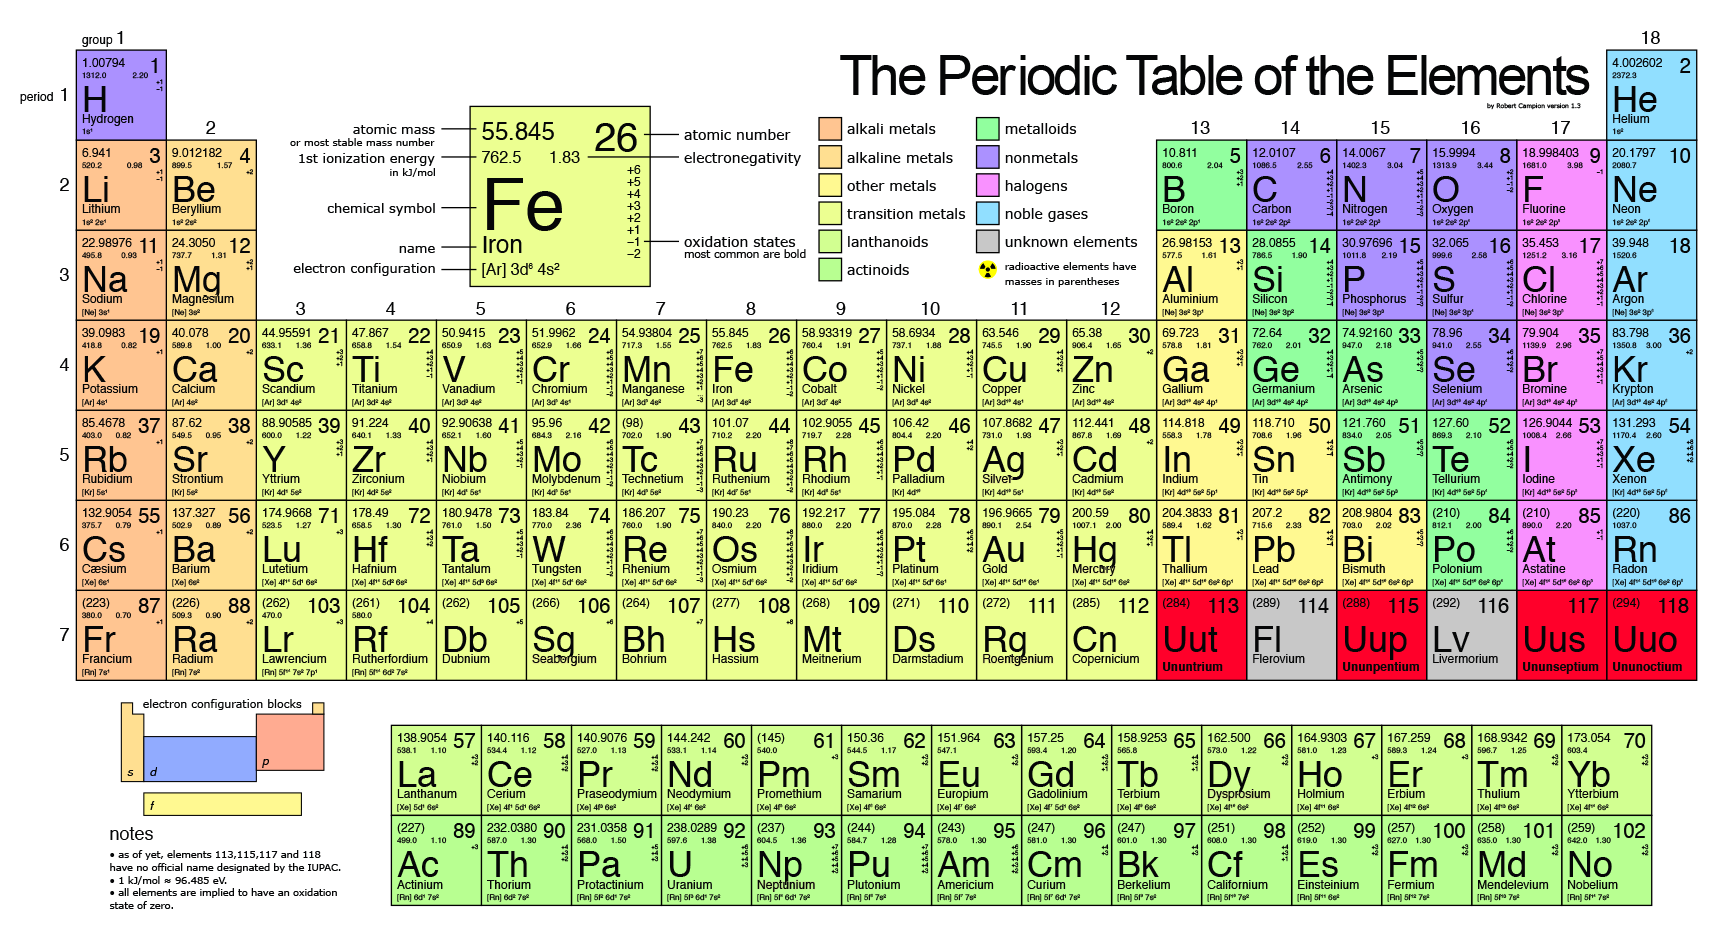 wwwcmuedu - Periodic Table Of Elements With Atomic Mass And Valency